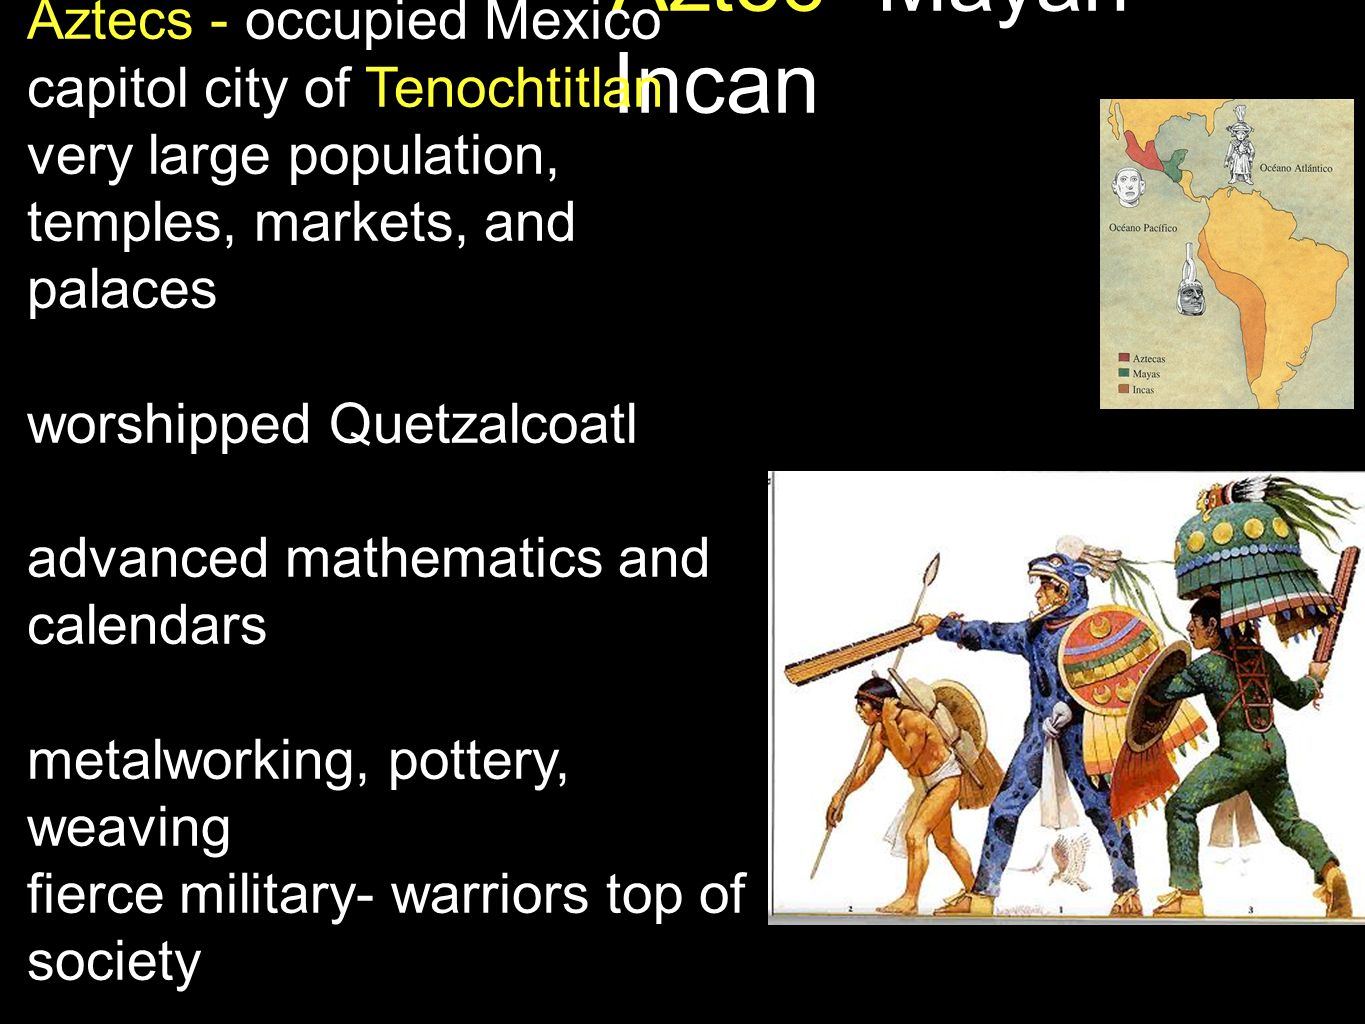 Aztec -Mayan- Incan Mayans - occupied Yucatan peninsula (El Salvador today) skilled engineers and architects writing system based on pictures or glyphs religion based on multiple goods and agriculture astronomy experts